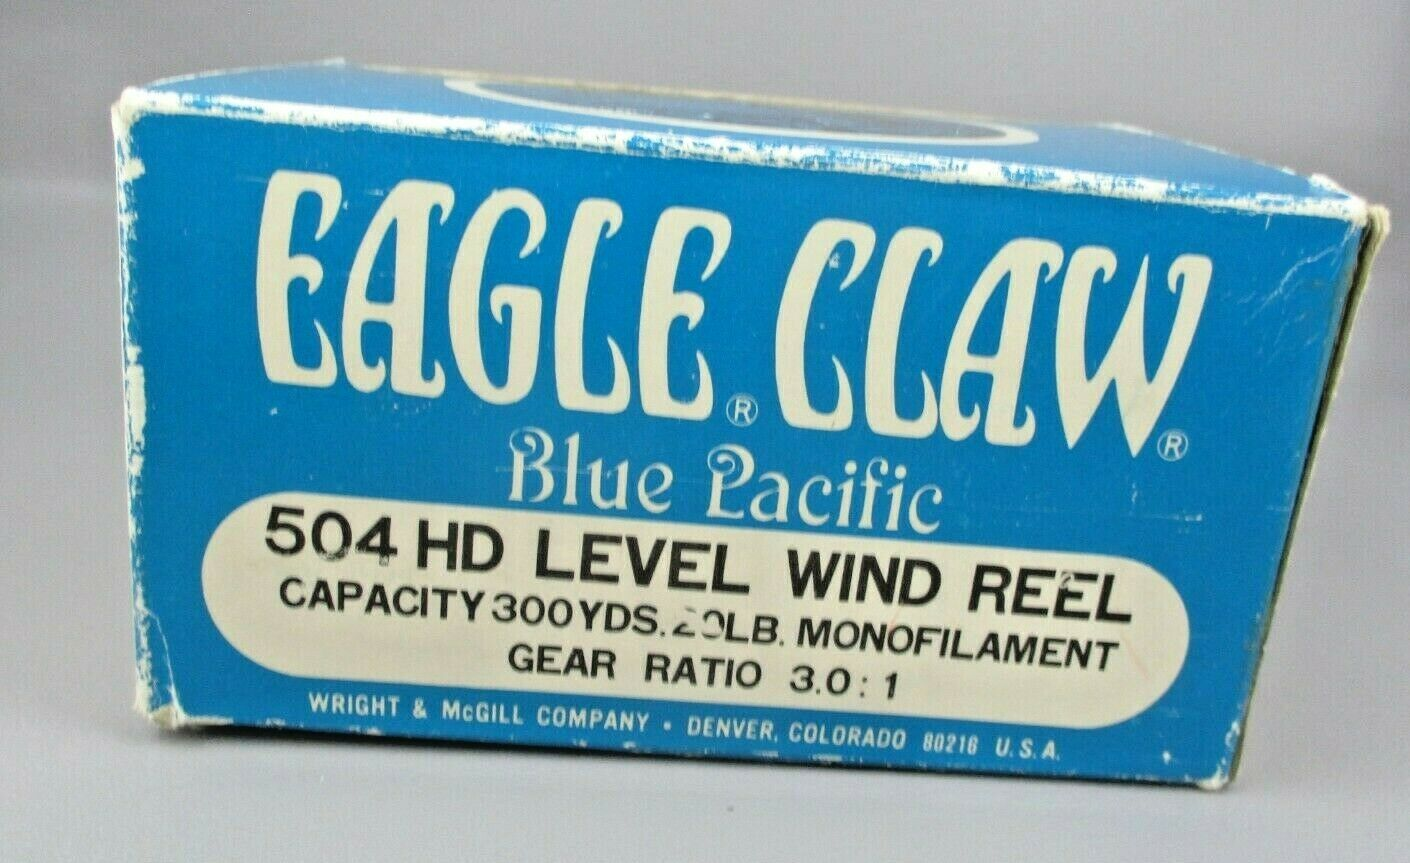 VINTAGE Wright & McGill EAGLE CLAW 504 HD  Level Wind FISHING REEL Super CLEAN  deals sale